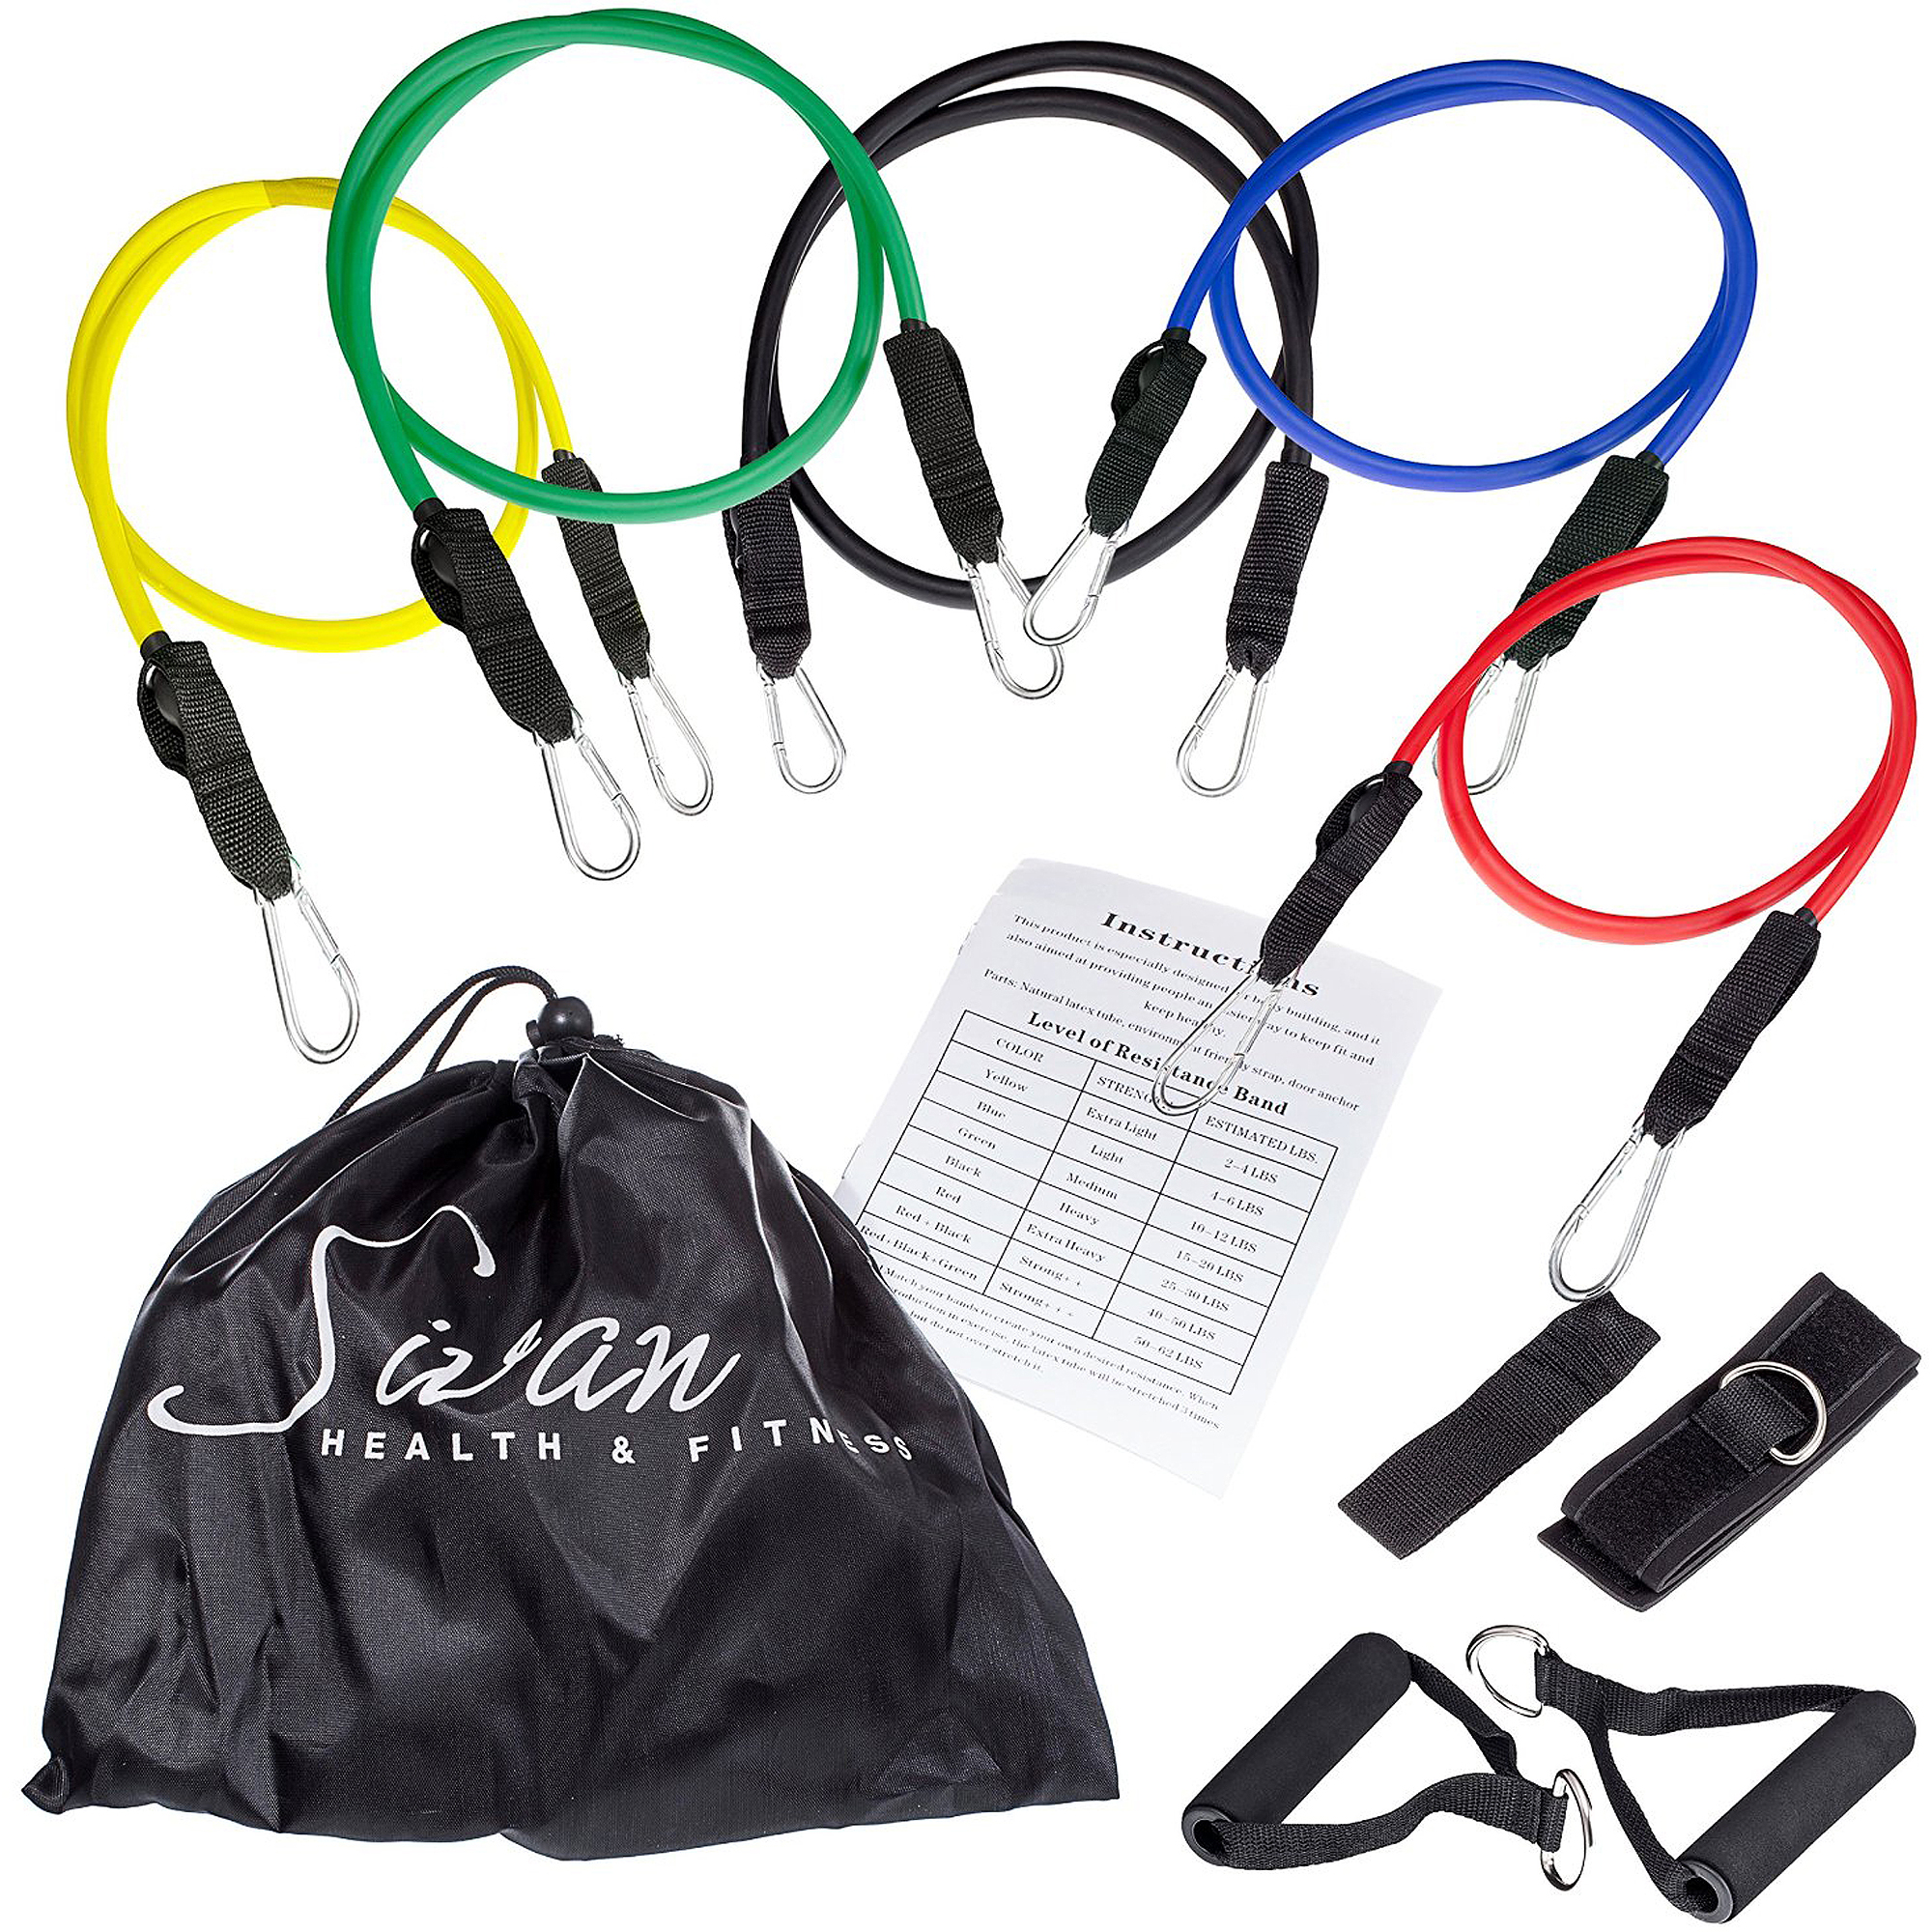 Sivan Latex Resistance Band Set with Carrying Case and Exercise Chart